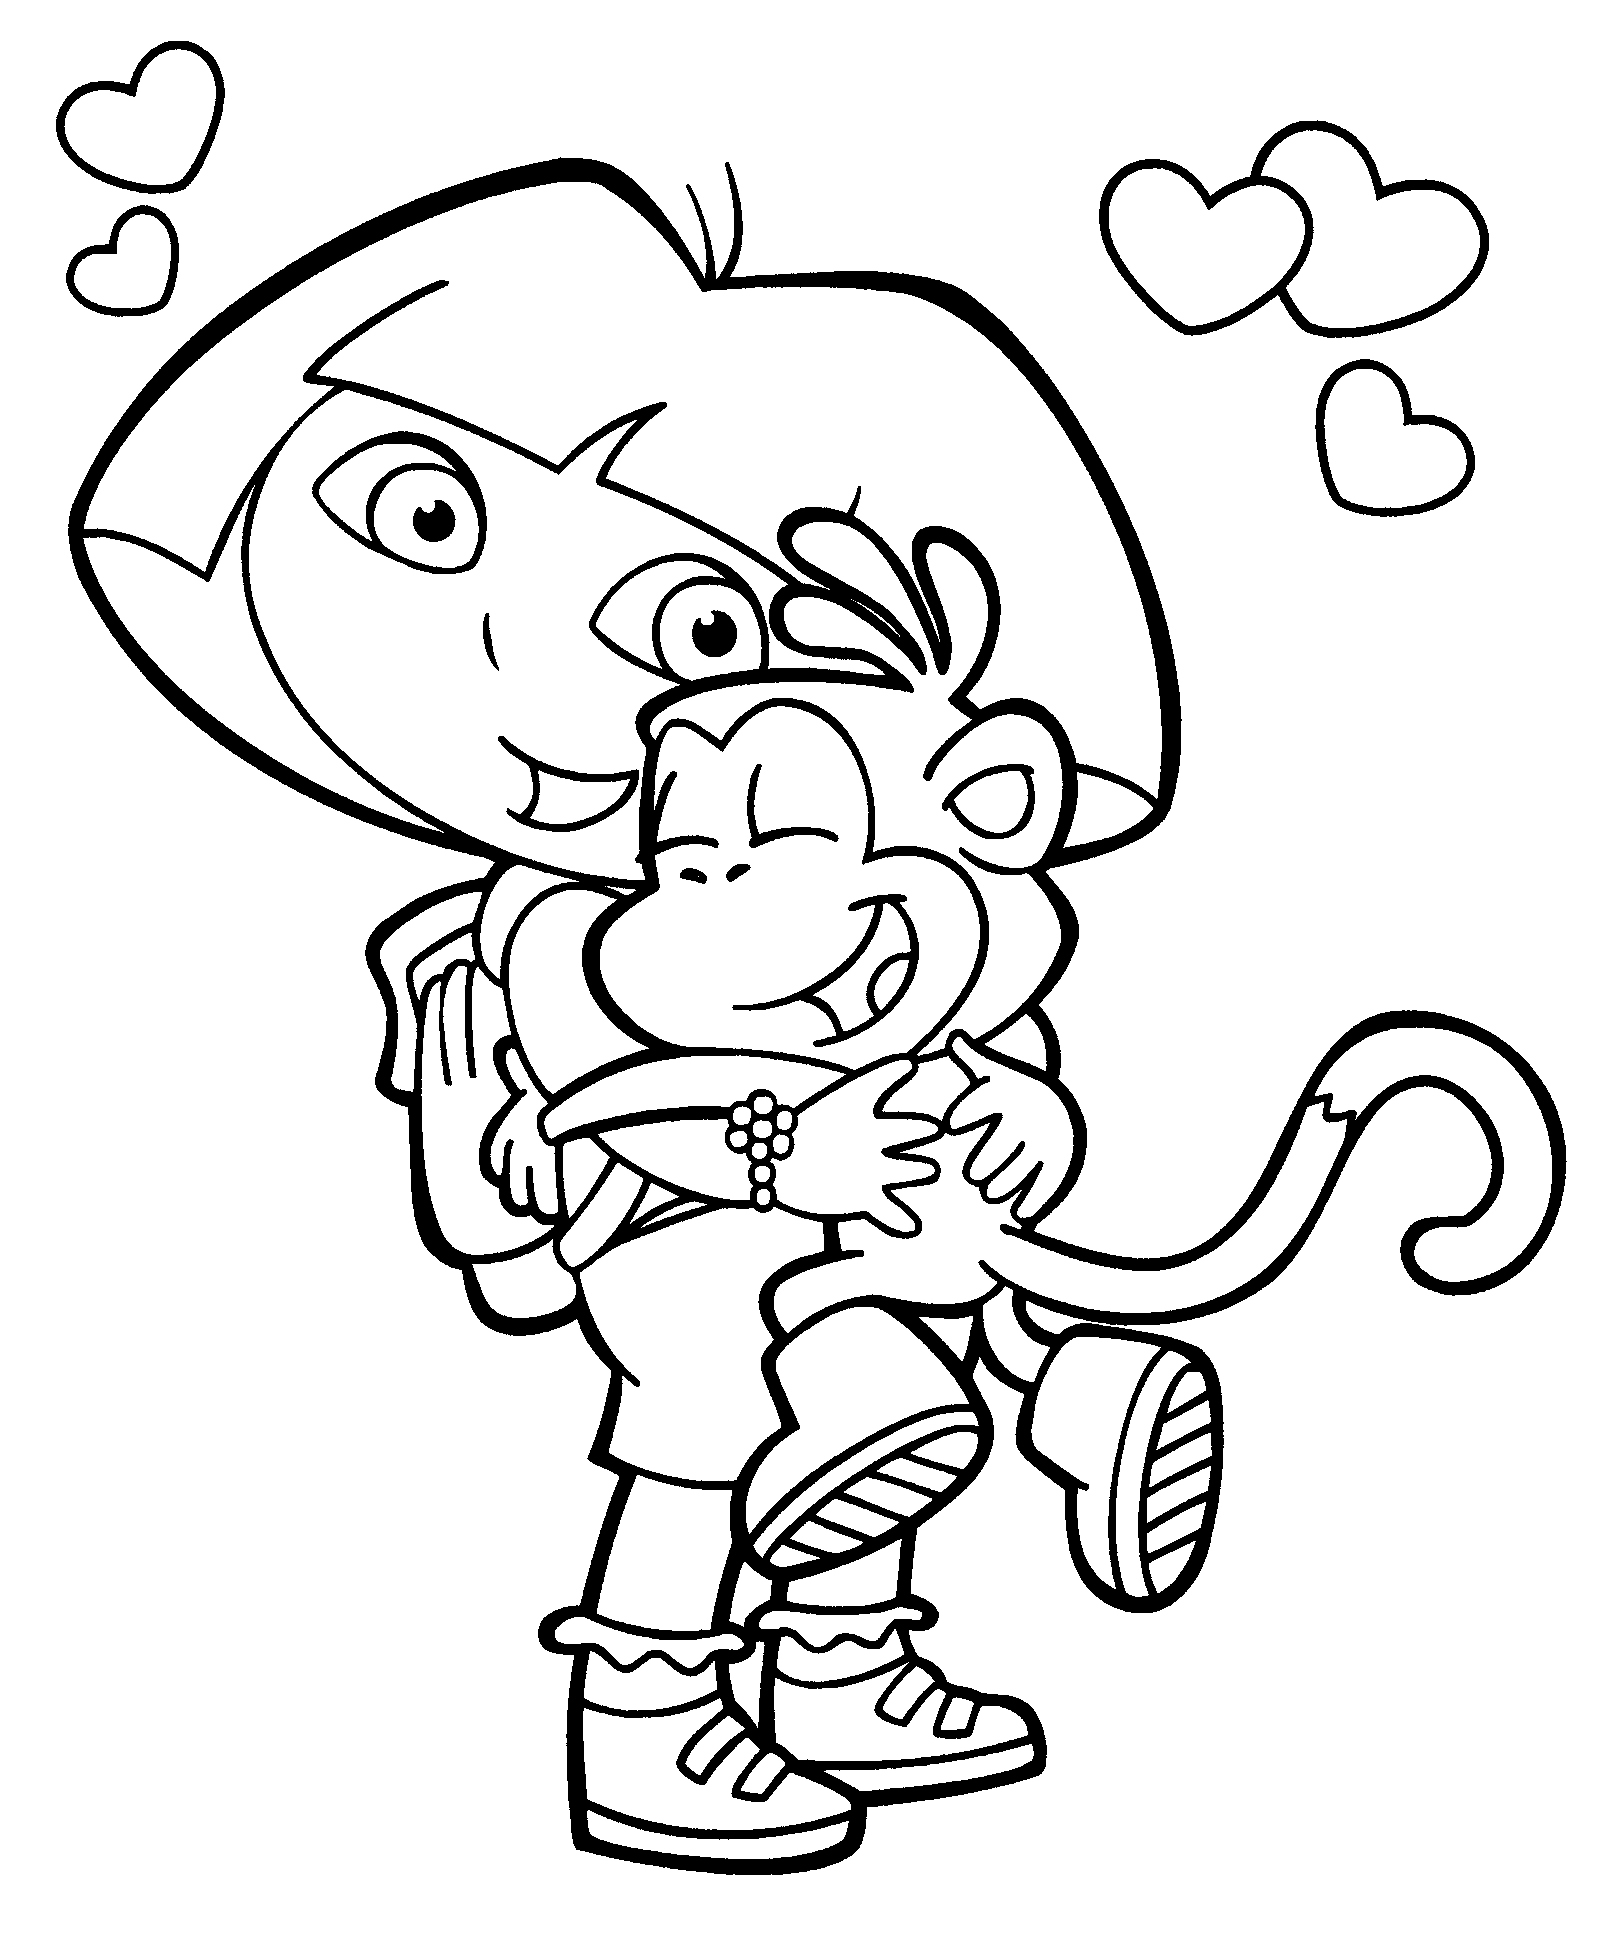 Nick Jr Coloring Pages 21 Coloring Kids Nick Jr Coloring Pages